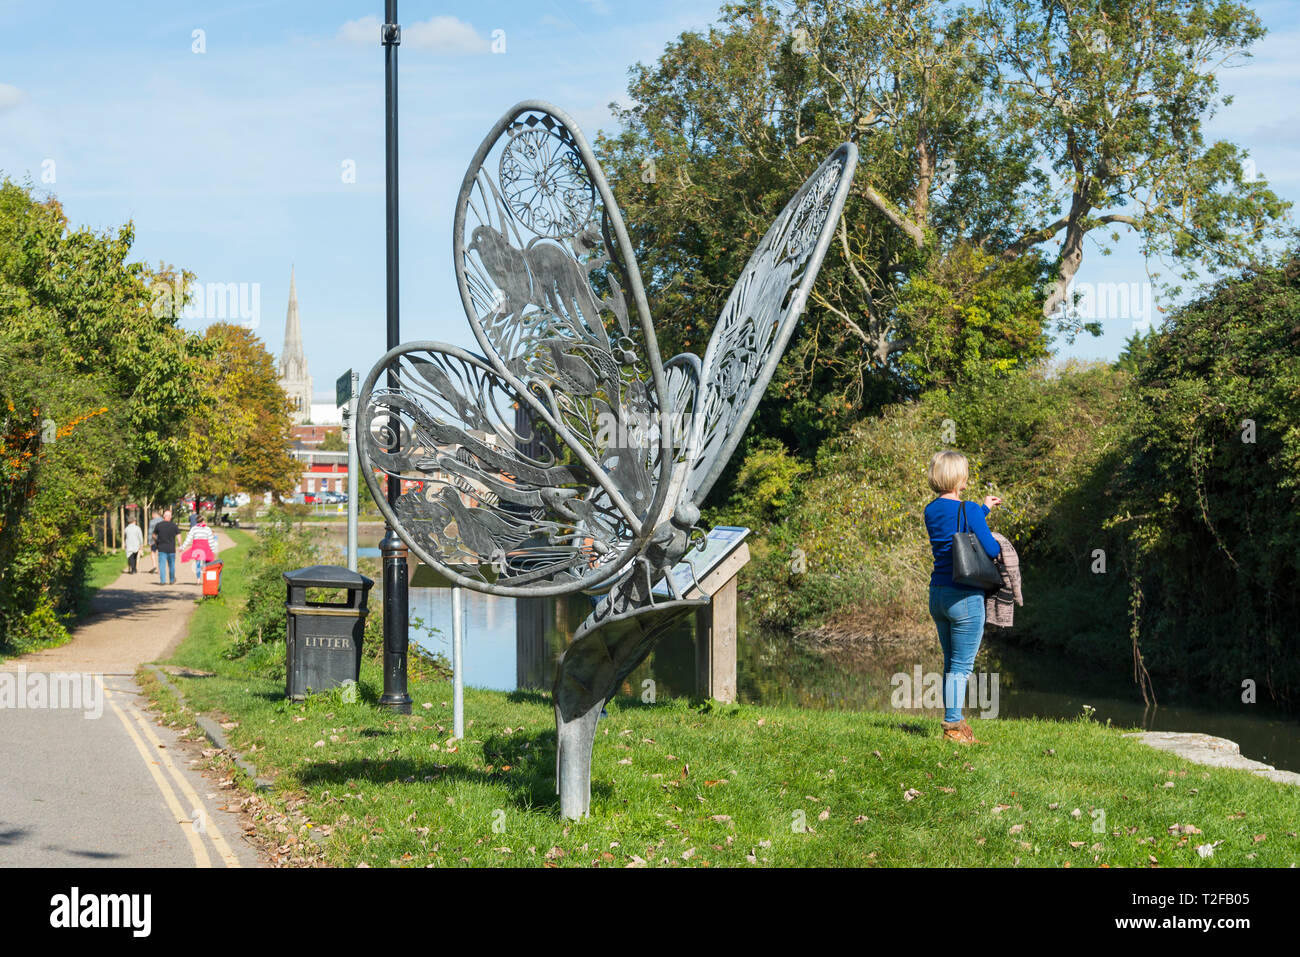 Butterfly sculpture on the towpath alongside Chichester Ship Canal, Chichester, West Sussex, England, UK. - Stock Image